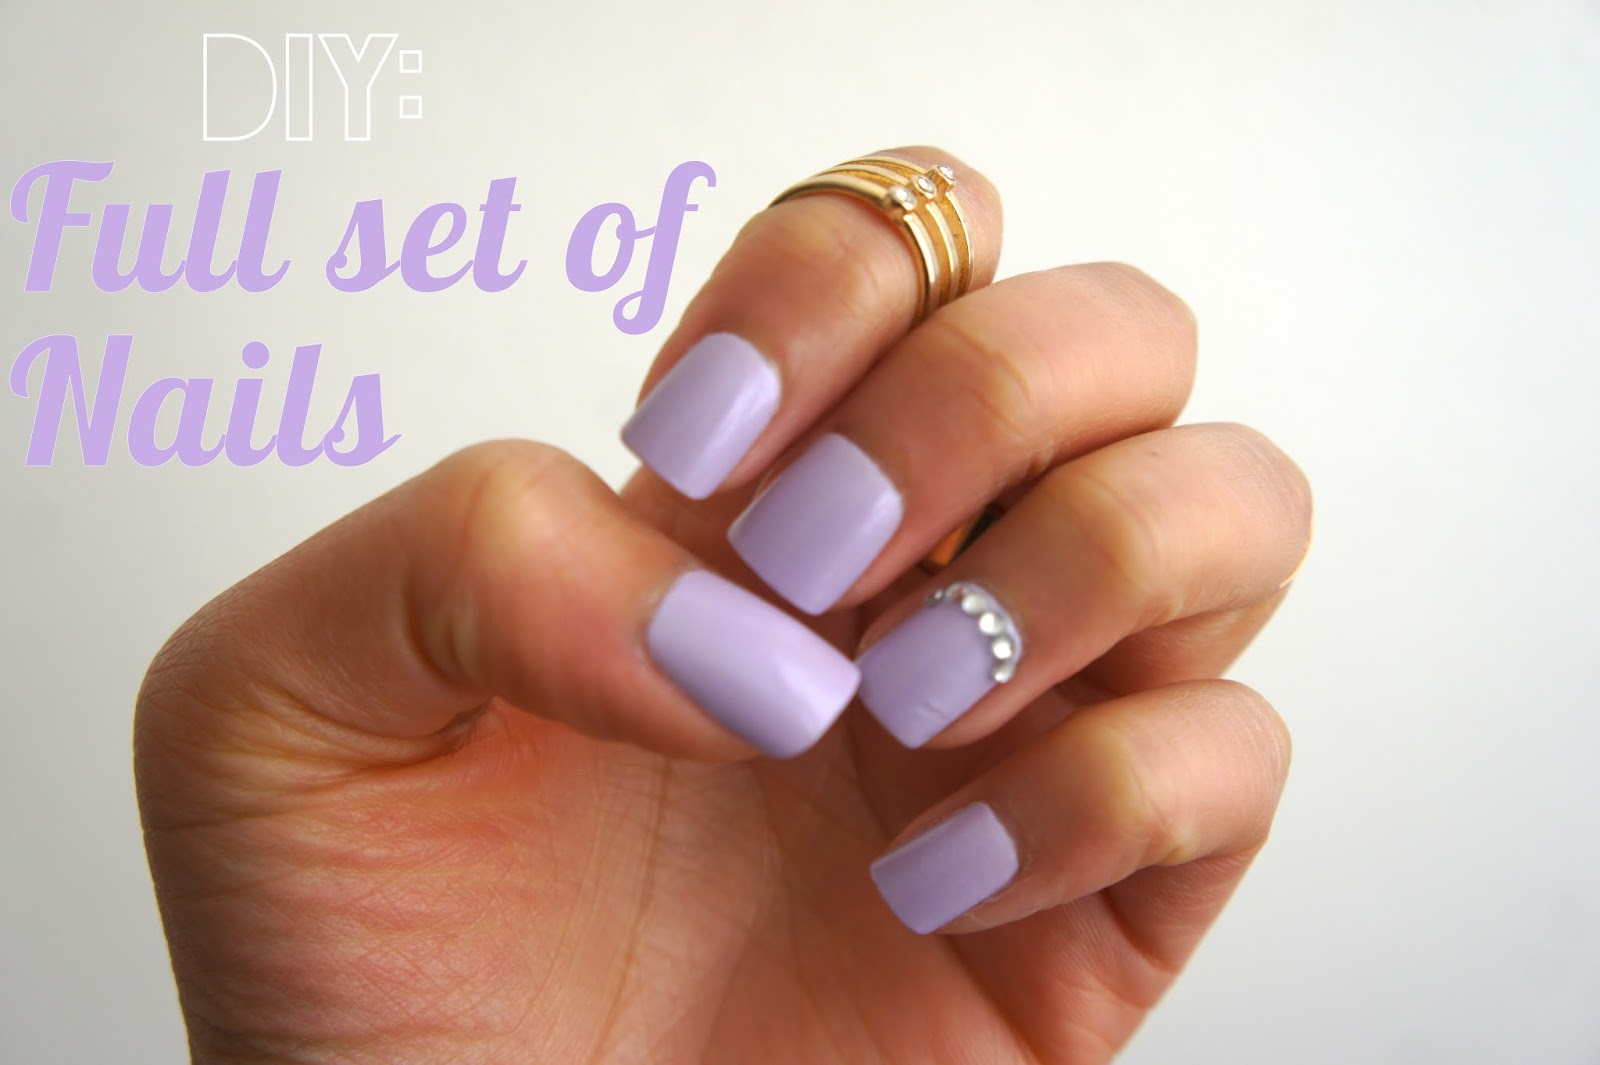 Diy Full Set Of Nails No Acrylic Drills